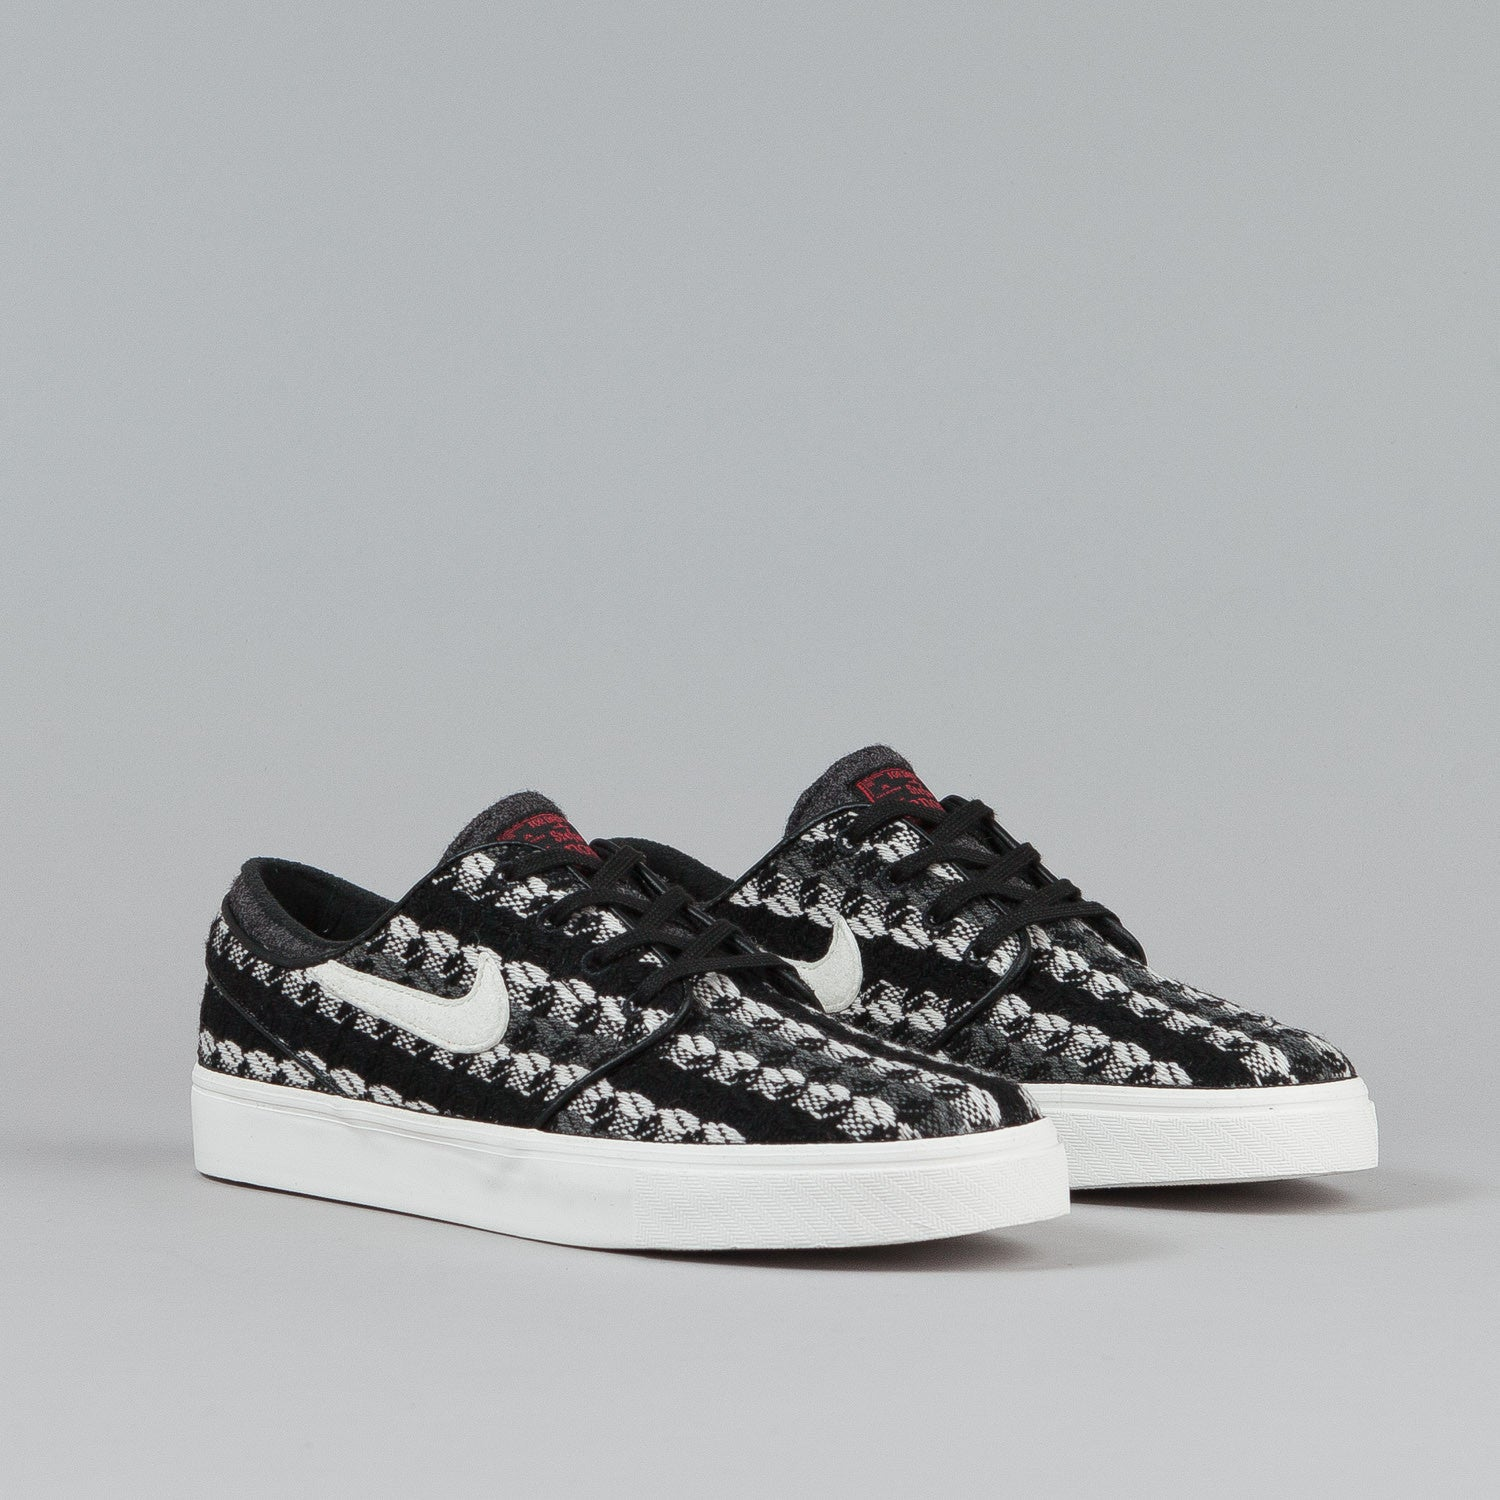 Nike SB Stefan Janoski Shoes Black / Ivory - Warmth Pack